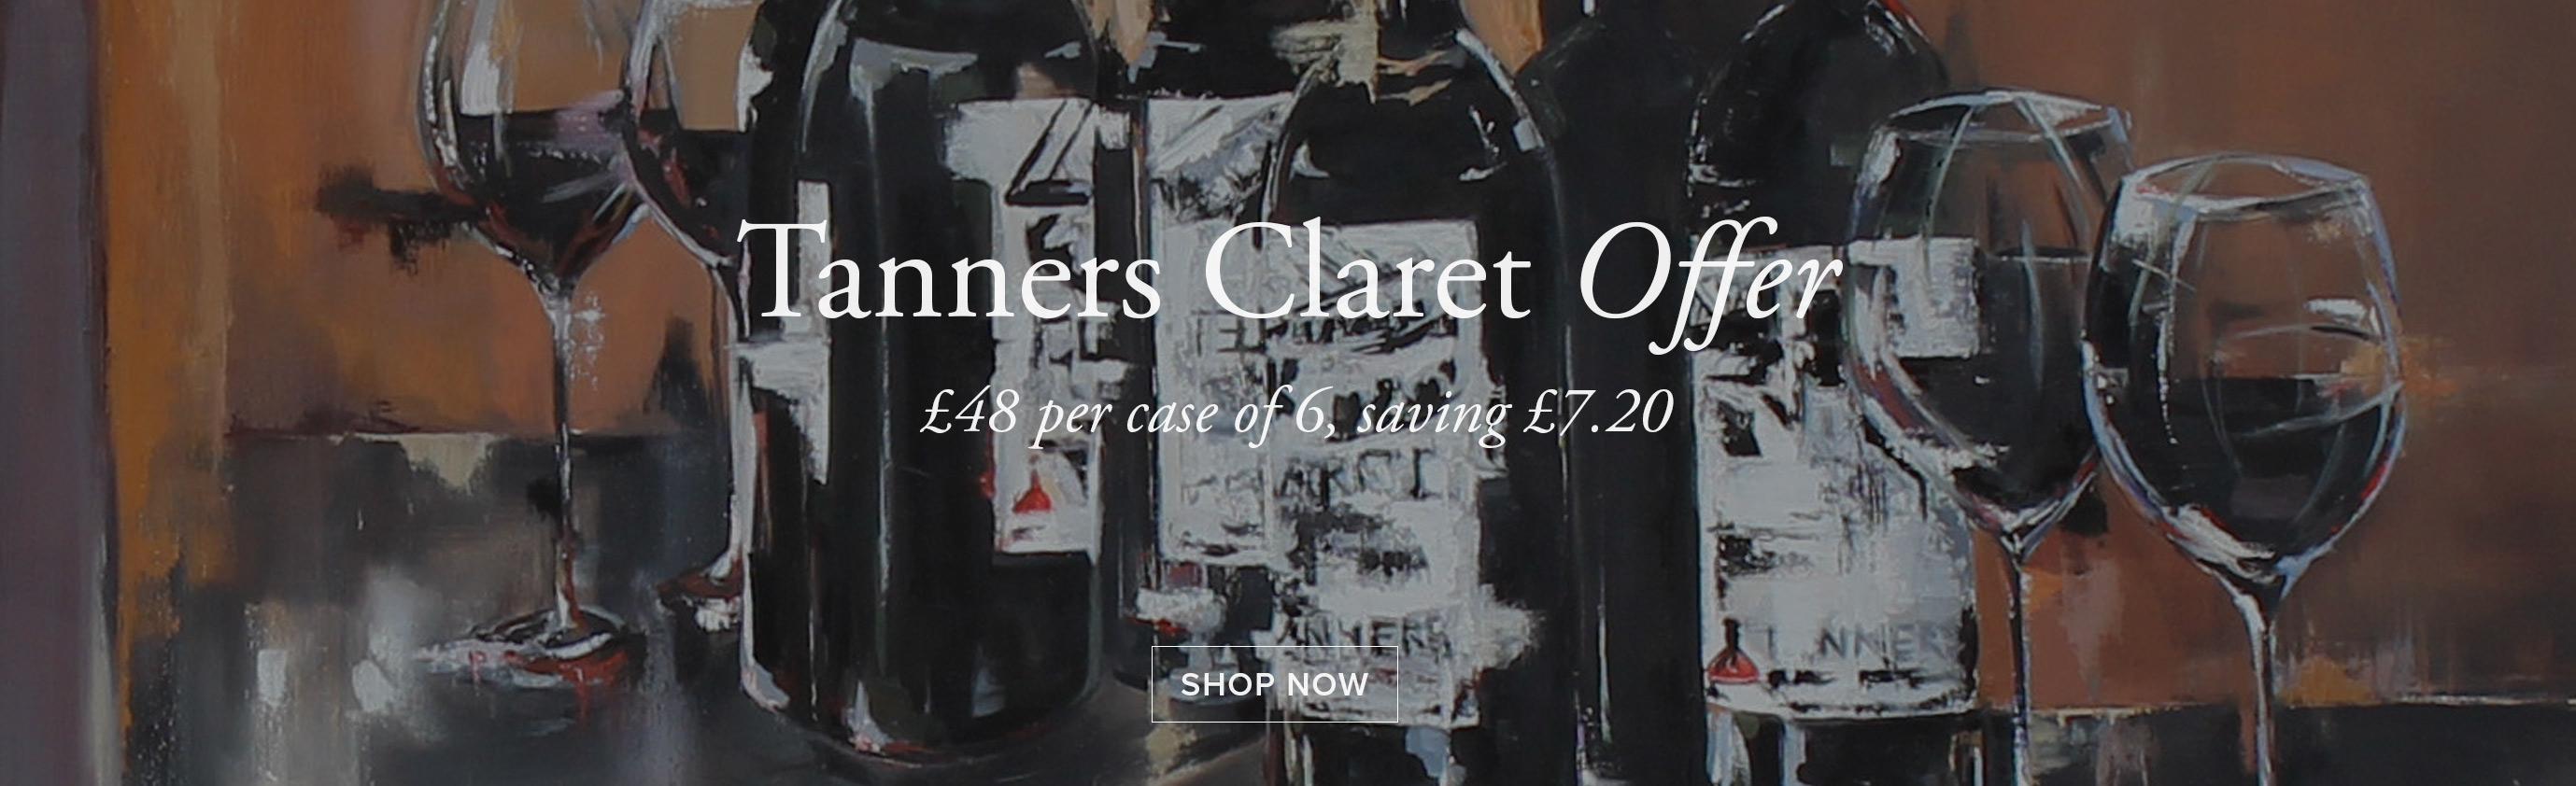 Latest Offers Tanners Claret